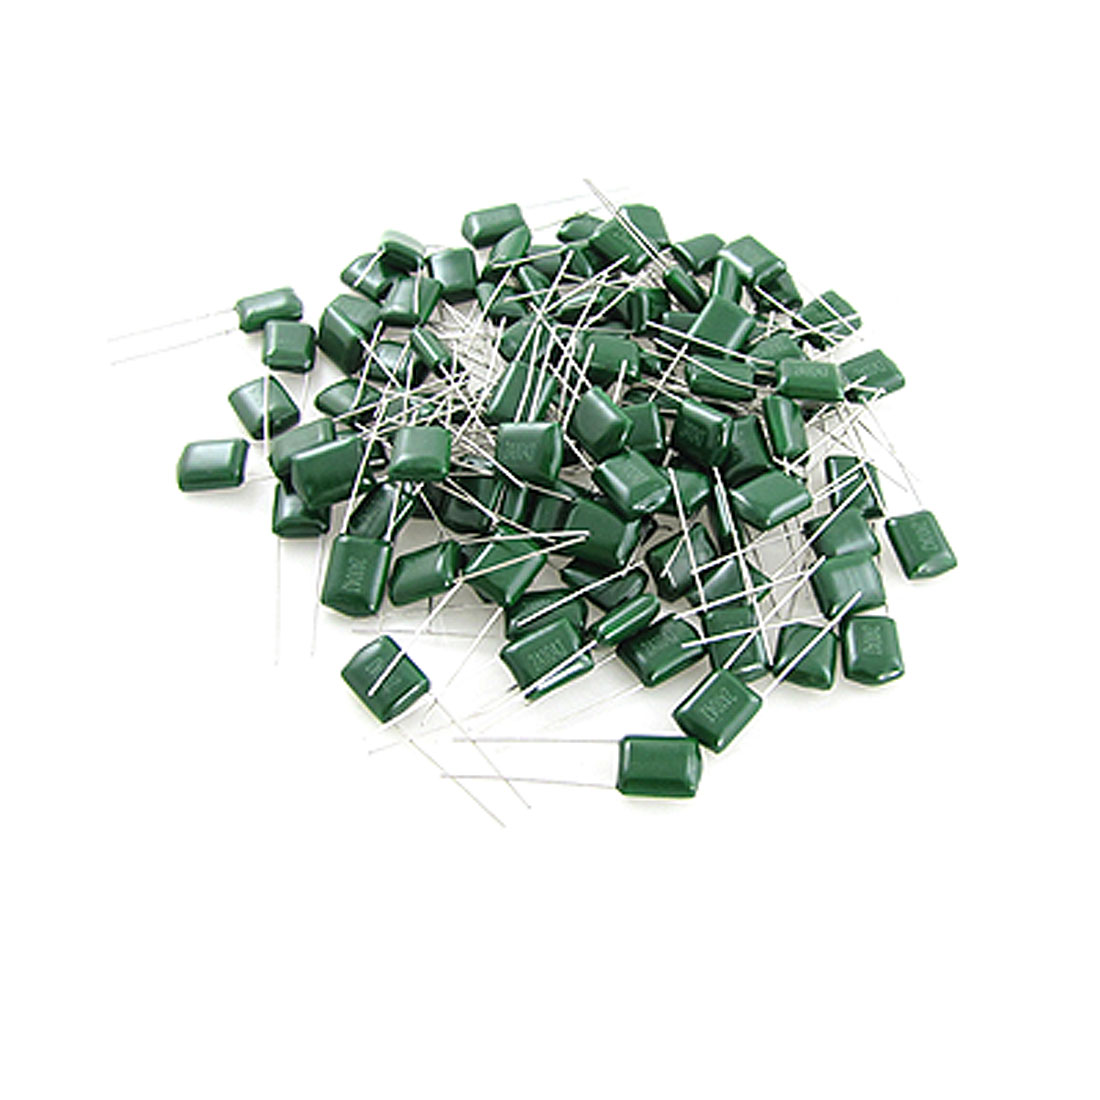 DC 100V 0.1uF Mylar Polyester Film Capacitor(Bag of 100)